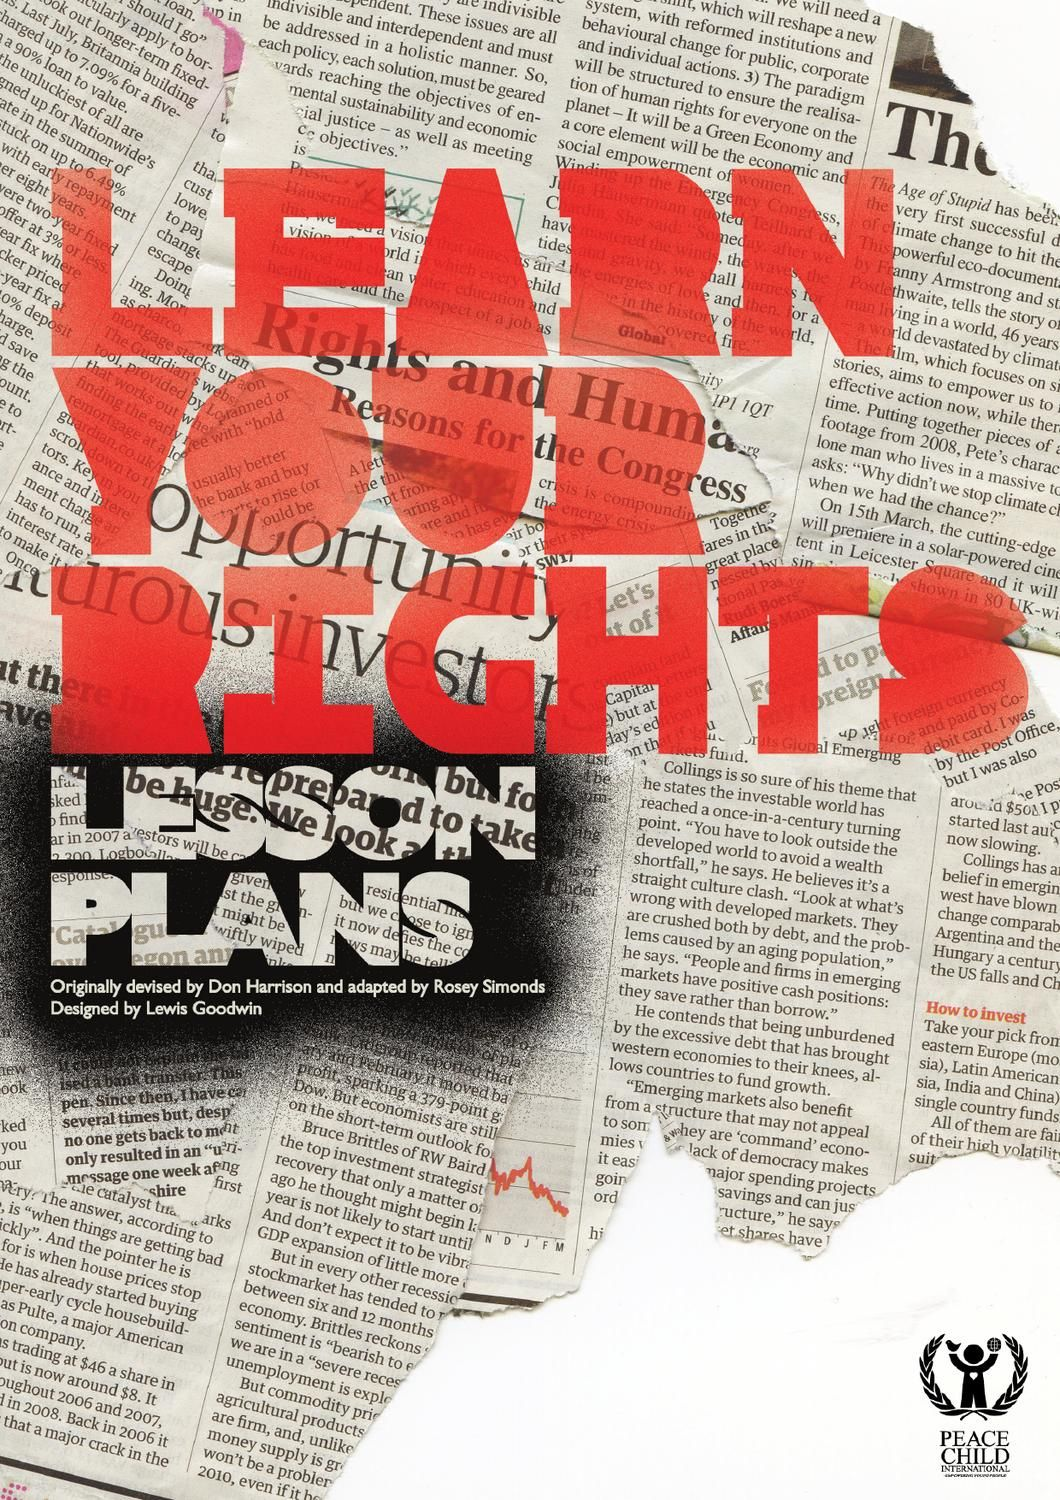 Human Rights Lessons Plans